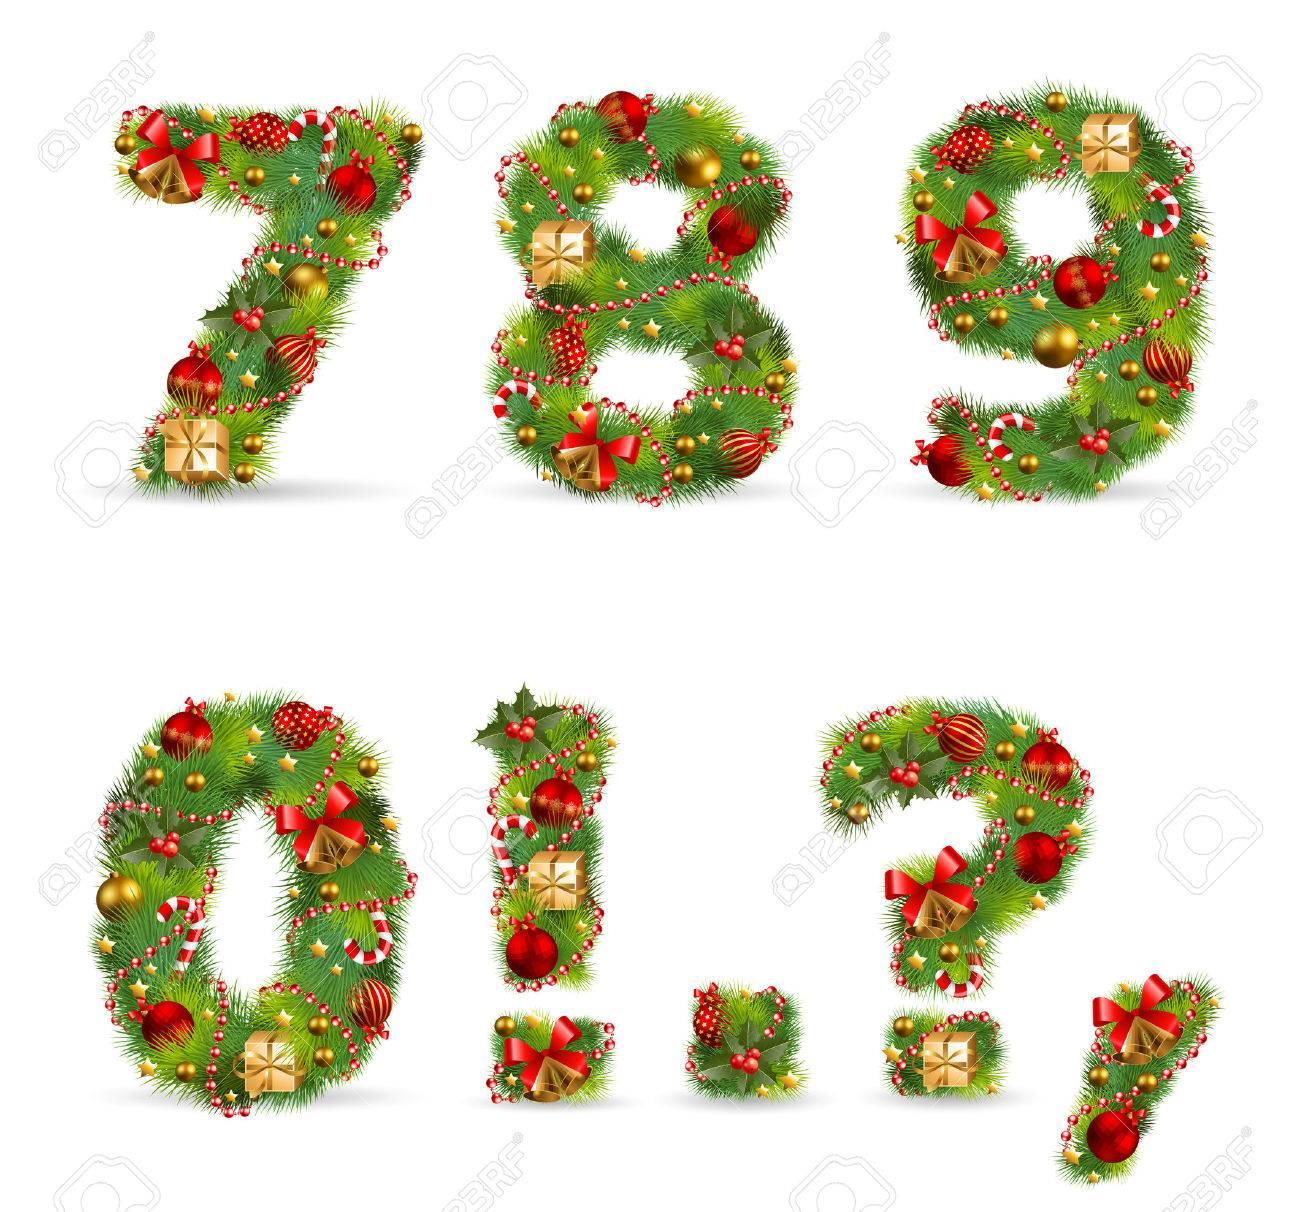 7890, Vector Christmas Tree Font With Green Fir And Baubles Stock Vector   8391571